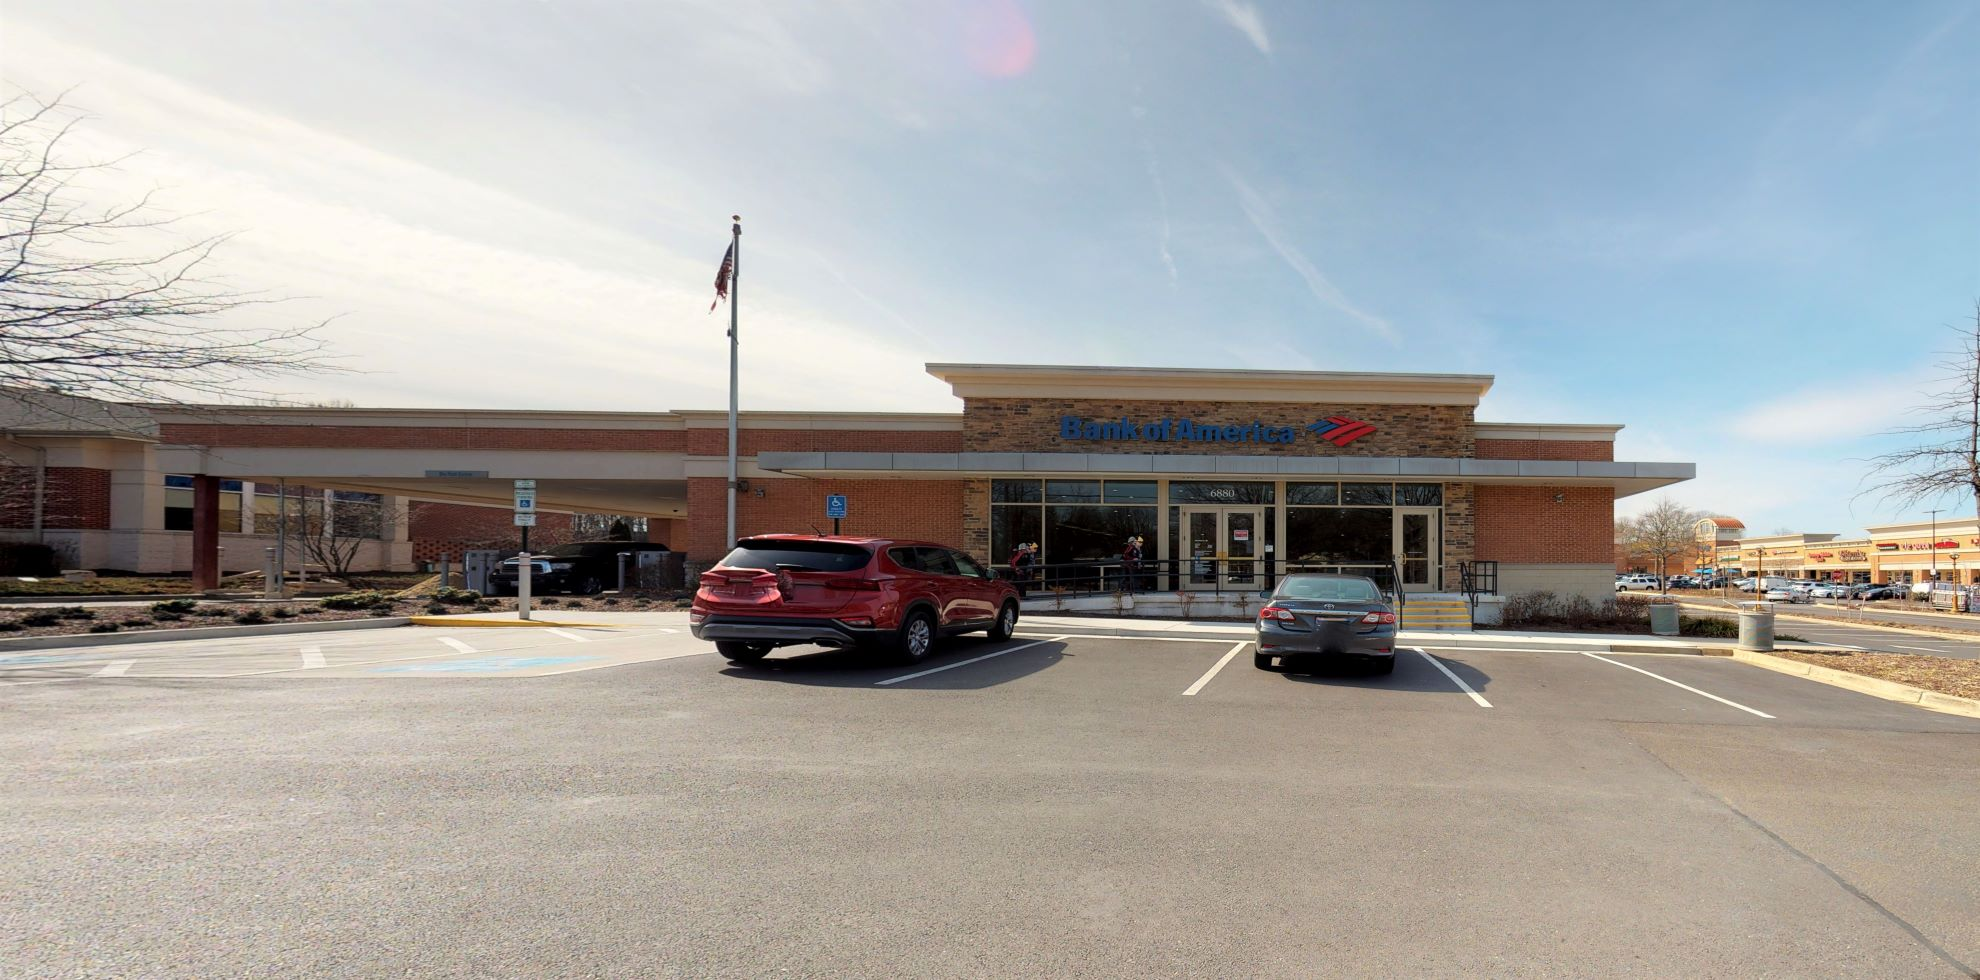 Bank of America financial center with drive-thru ATM   6880 Race Track Rd, Bowie, MD 20715